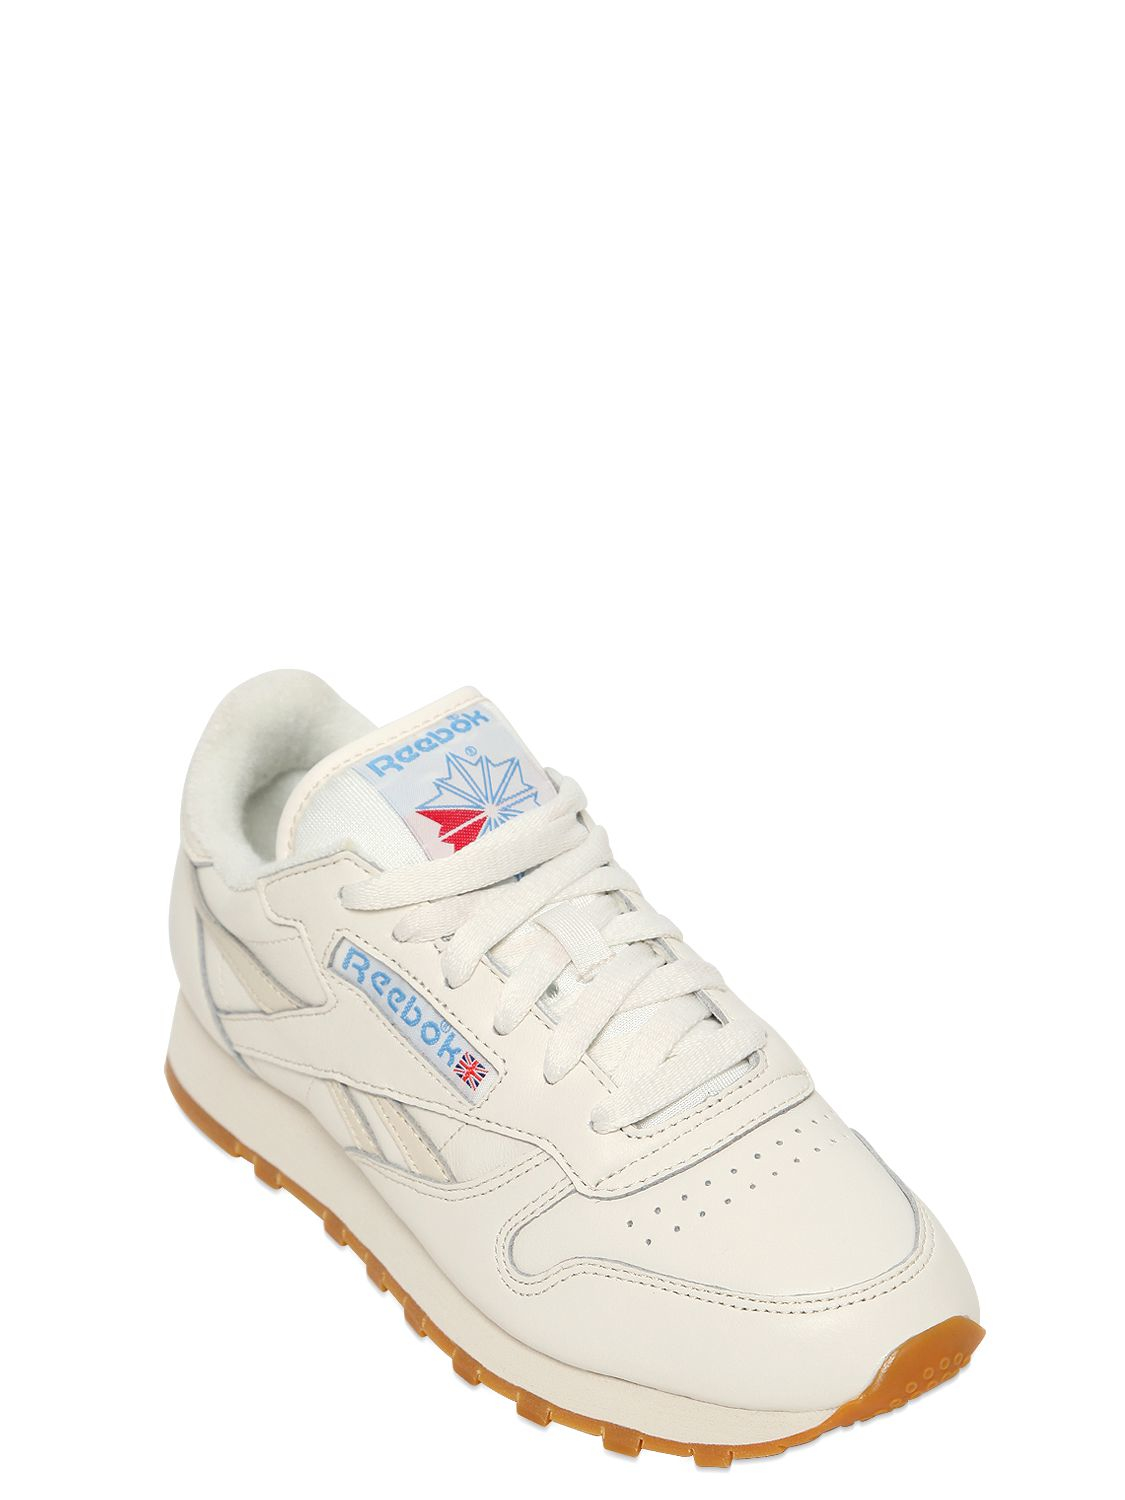 reebok classic leather vintage white dress